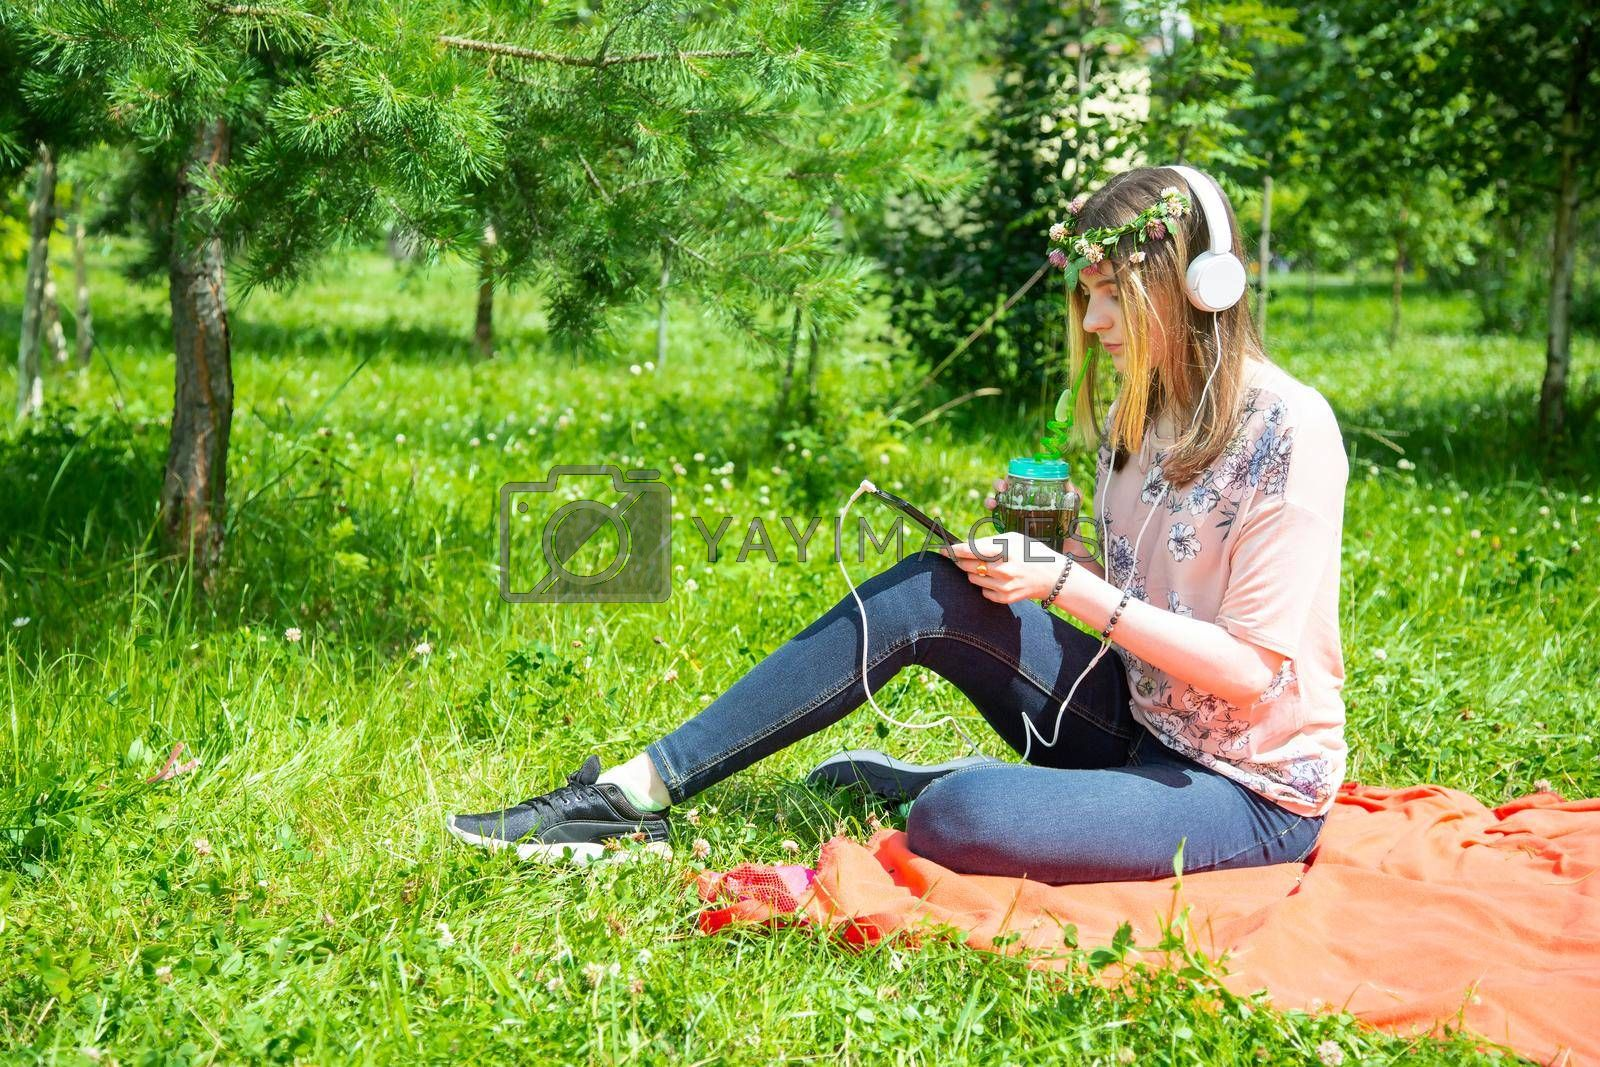 A young girl 20 years old Caucasian appearance looks into her mobile phone, writes a text message while sitting on the lawn in the park on a summer day. The girl is dressed in a floral T-shirt